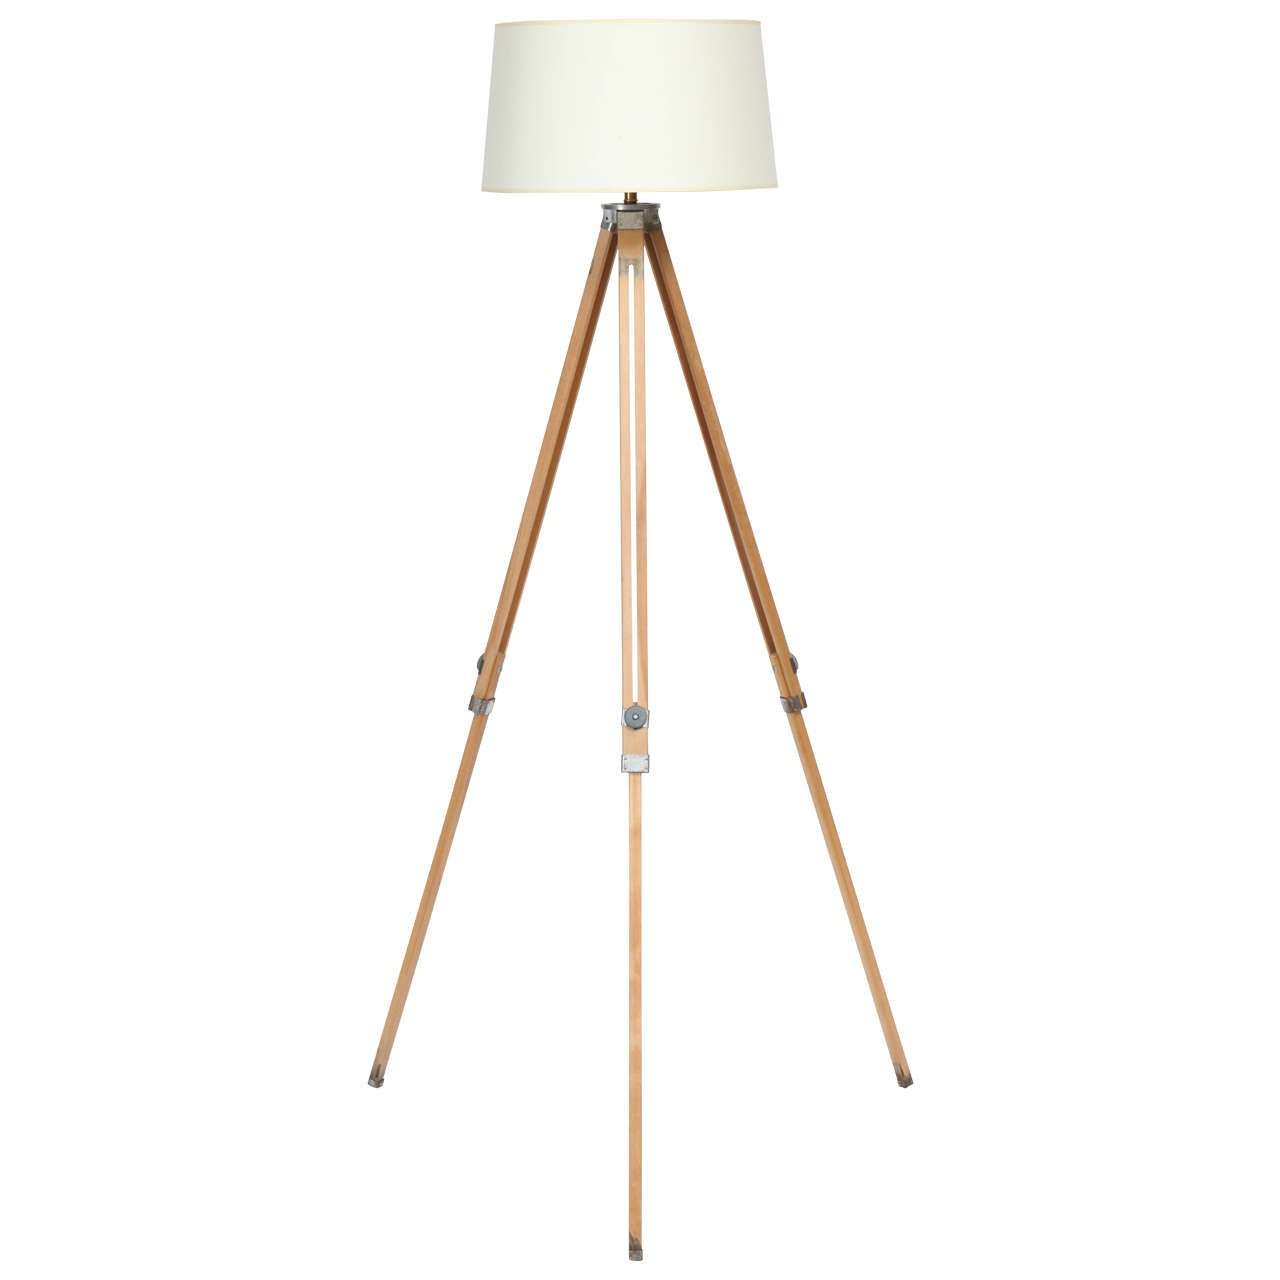 Tripod Floor Lamps Sale Vintage Tripod Floor Lamp For Sale At 1stdibs